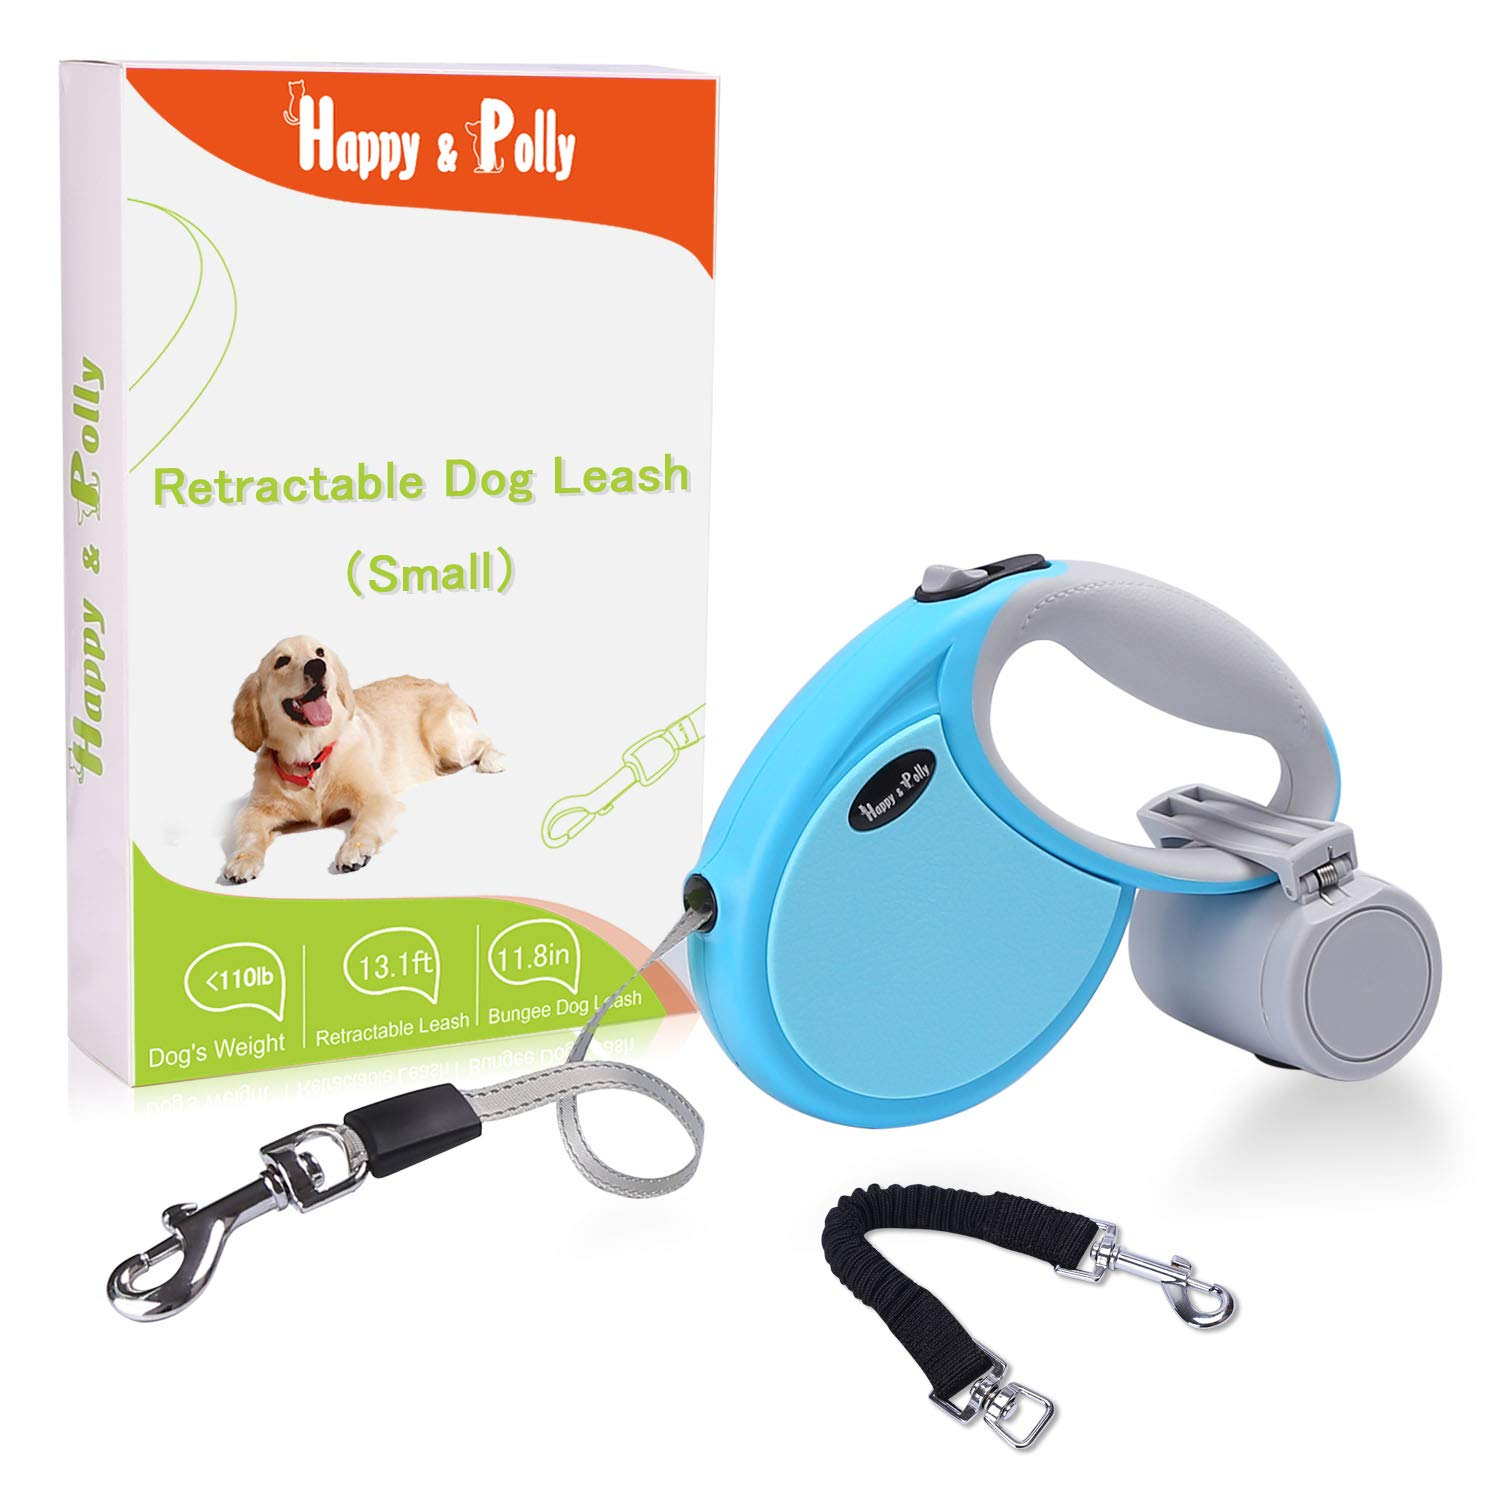 Happy & Polly Retractable Dog Leash Retractable Bungee Dog Leash Anti-Pull Dog Leash Anti-bite Reflective Non-Slip Handle Medium Small Dogs up to 150lbs (Blue-Compact)